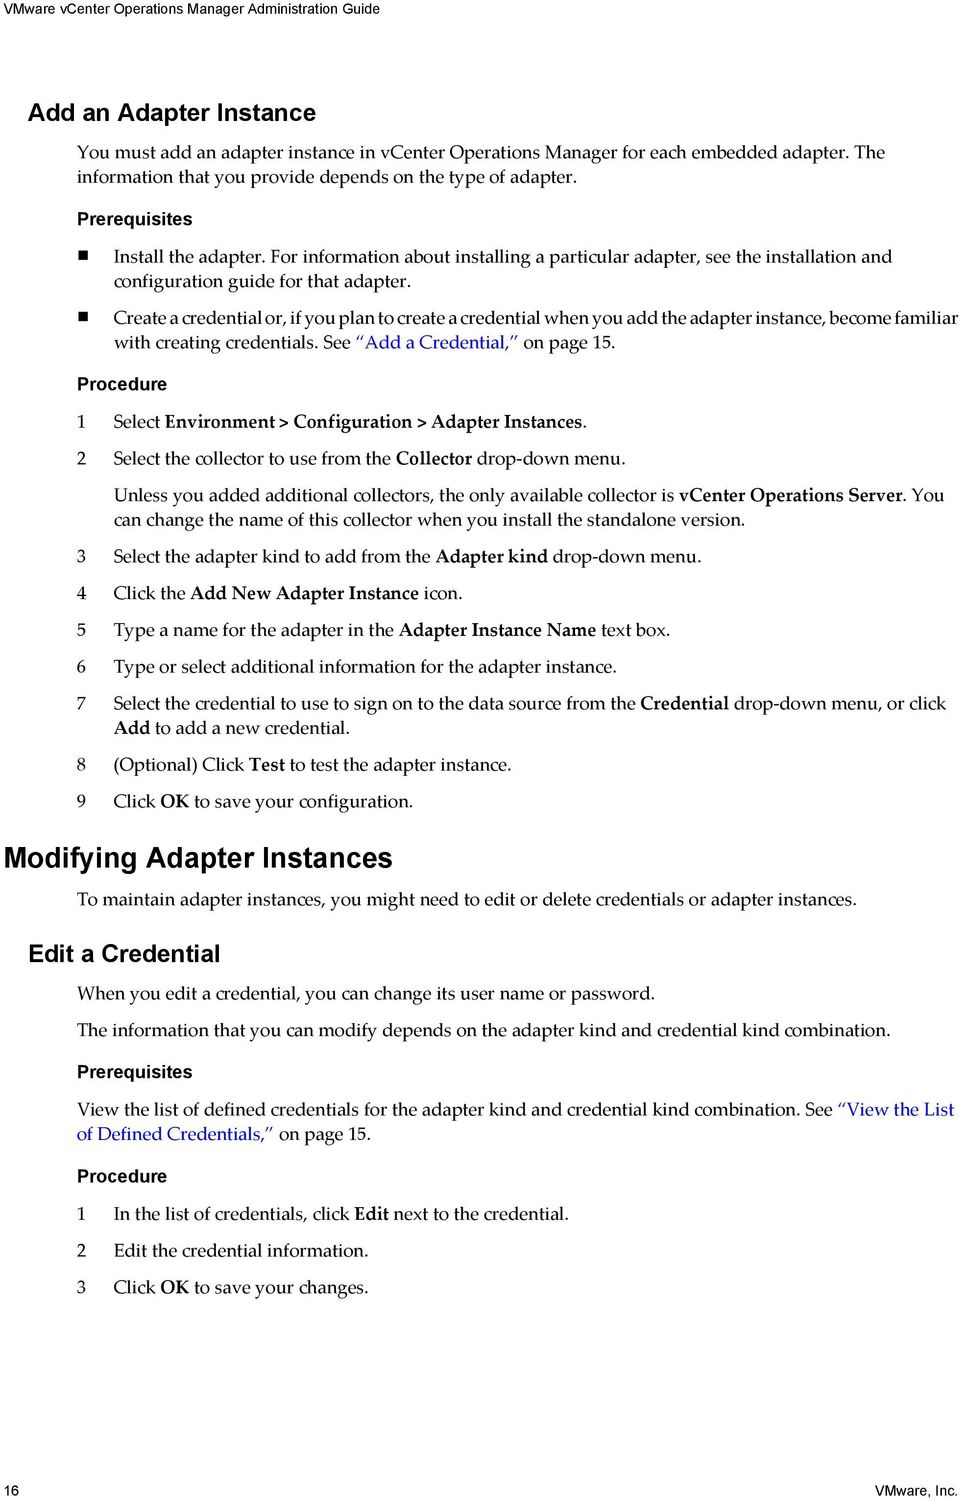 For information about installing a particular adapter, see the installation and configuration guide for that adapter.